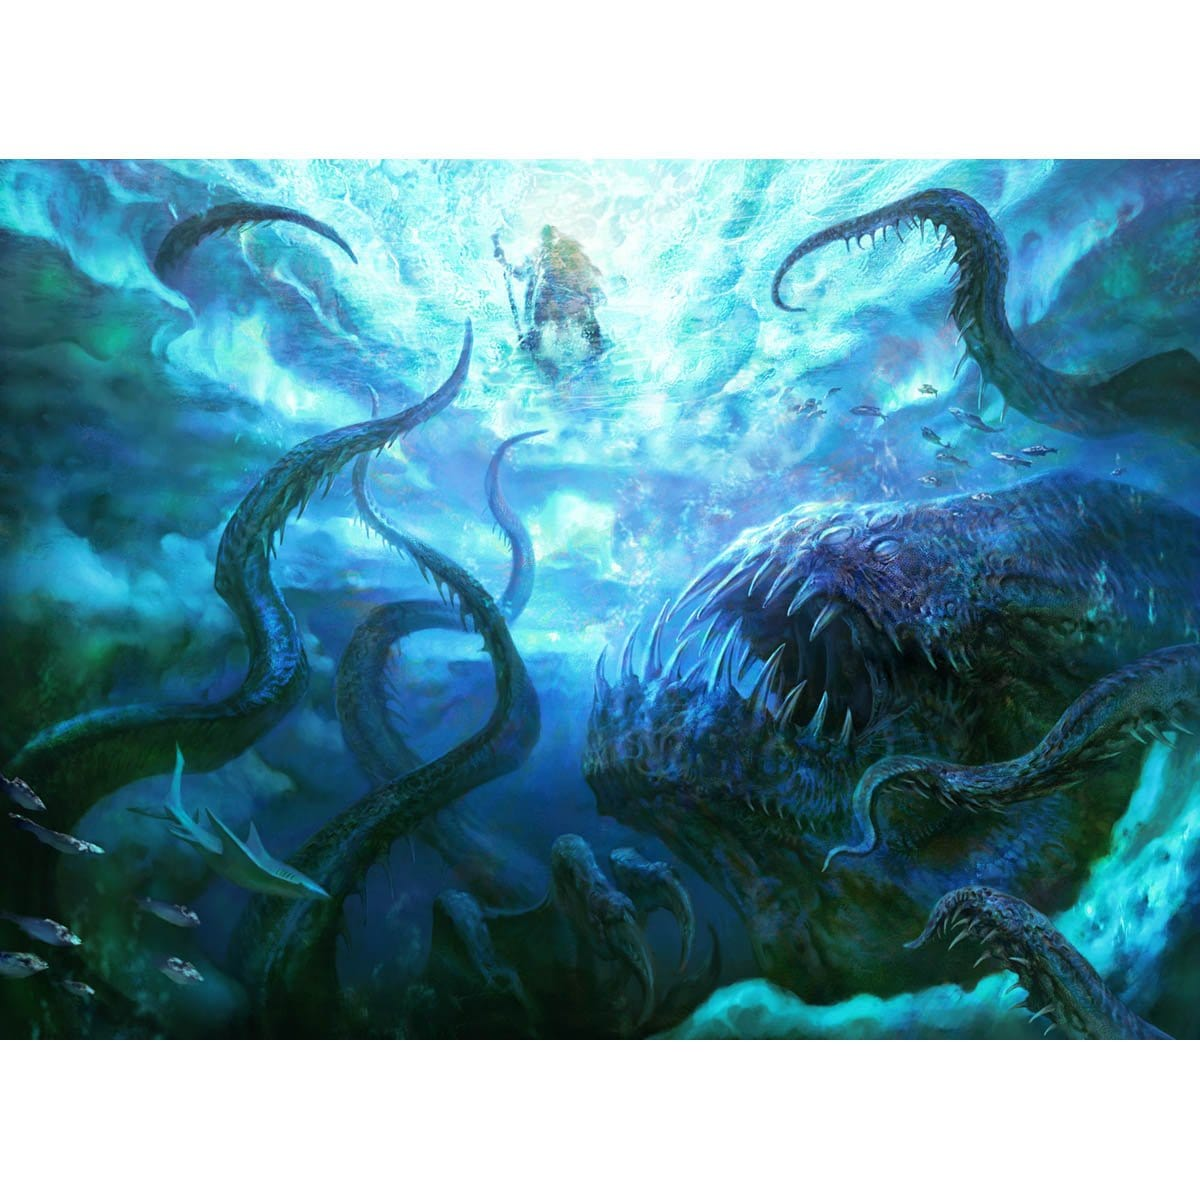 Dark Depths Print - Print - Original Magic Art - Accessories for Magic the Gathering and other card games